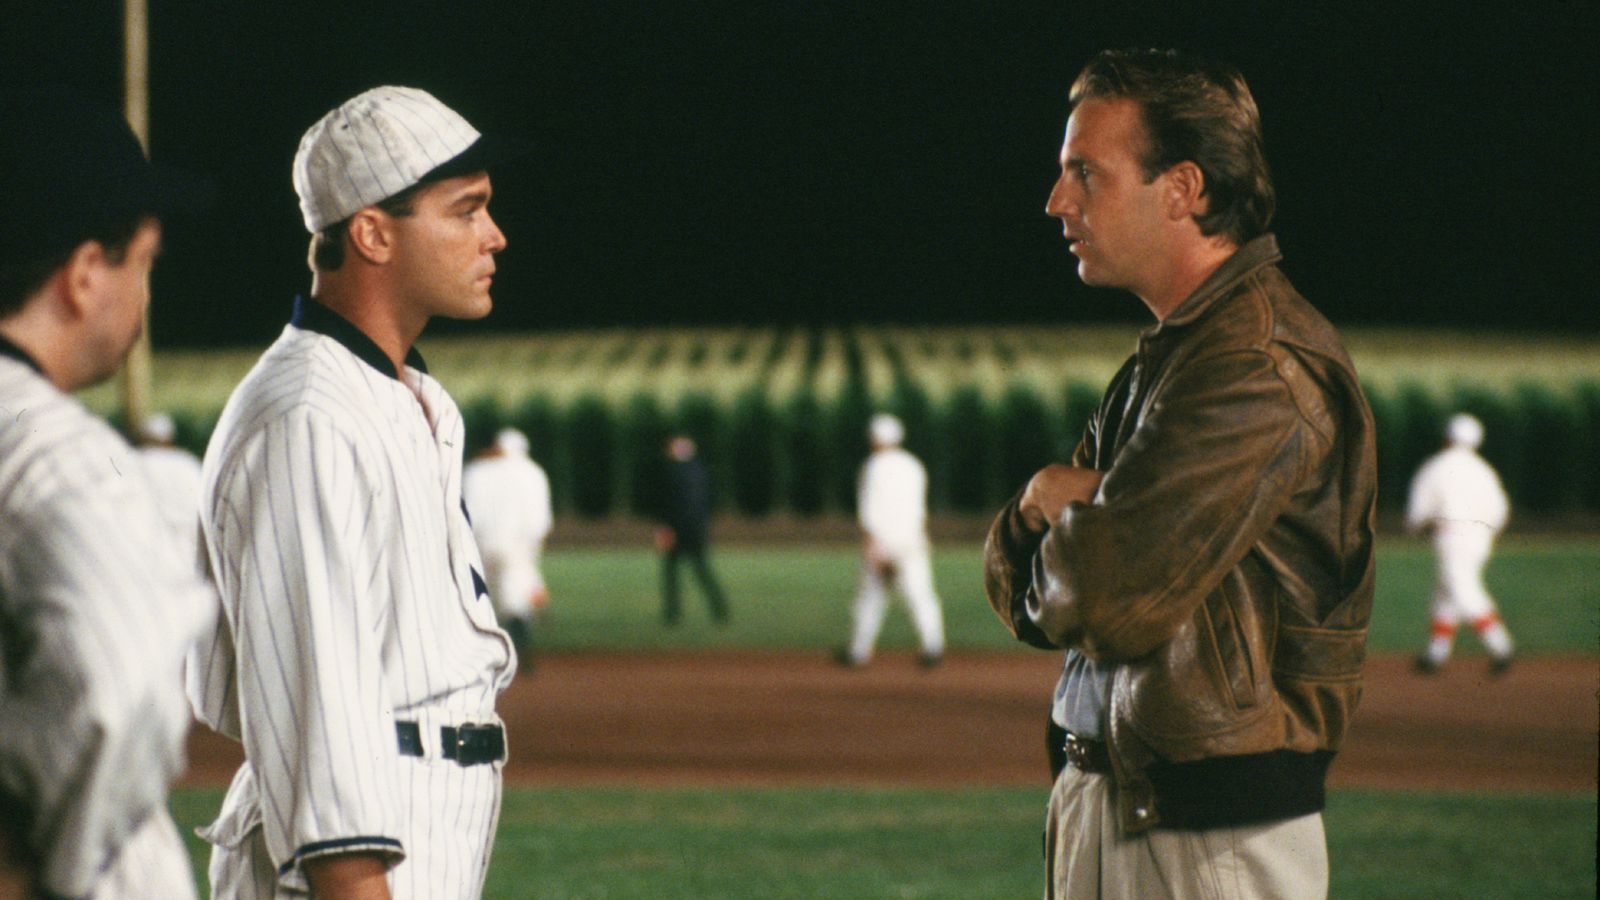 a review of the movie field of dreams As such, i hope you will forgive me for commenting on the 25th anniversary of the  semi-classic baseball film field of dreams on april 23, two.